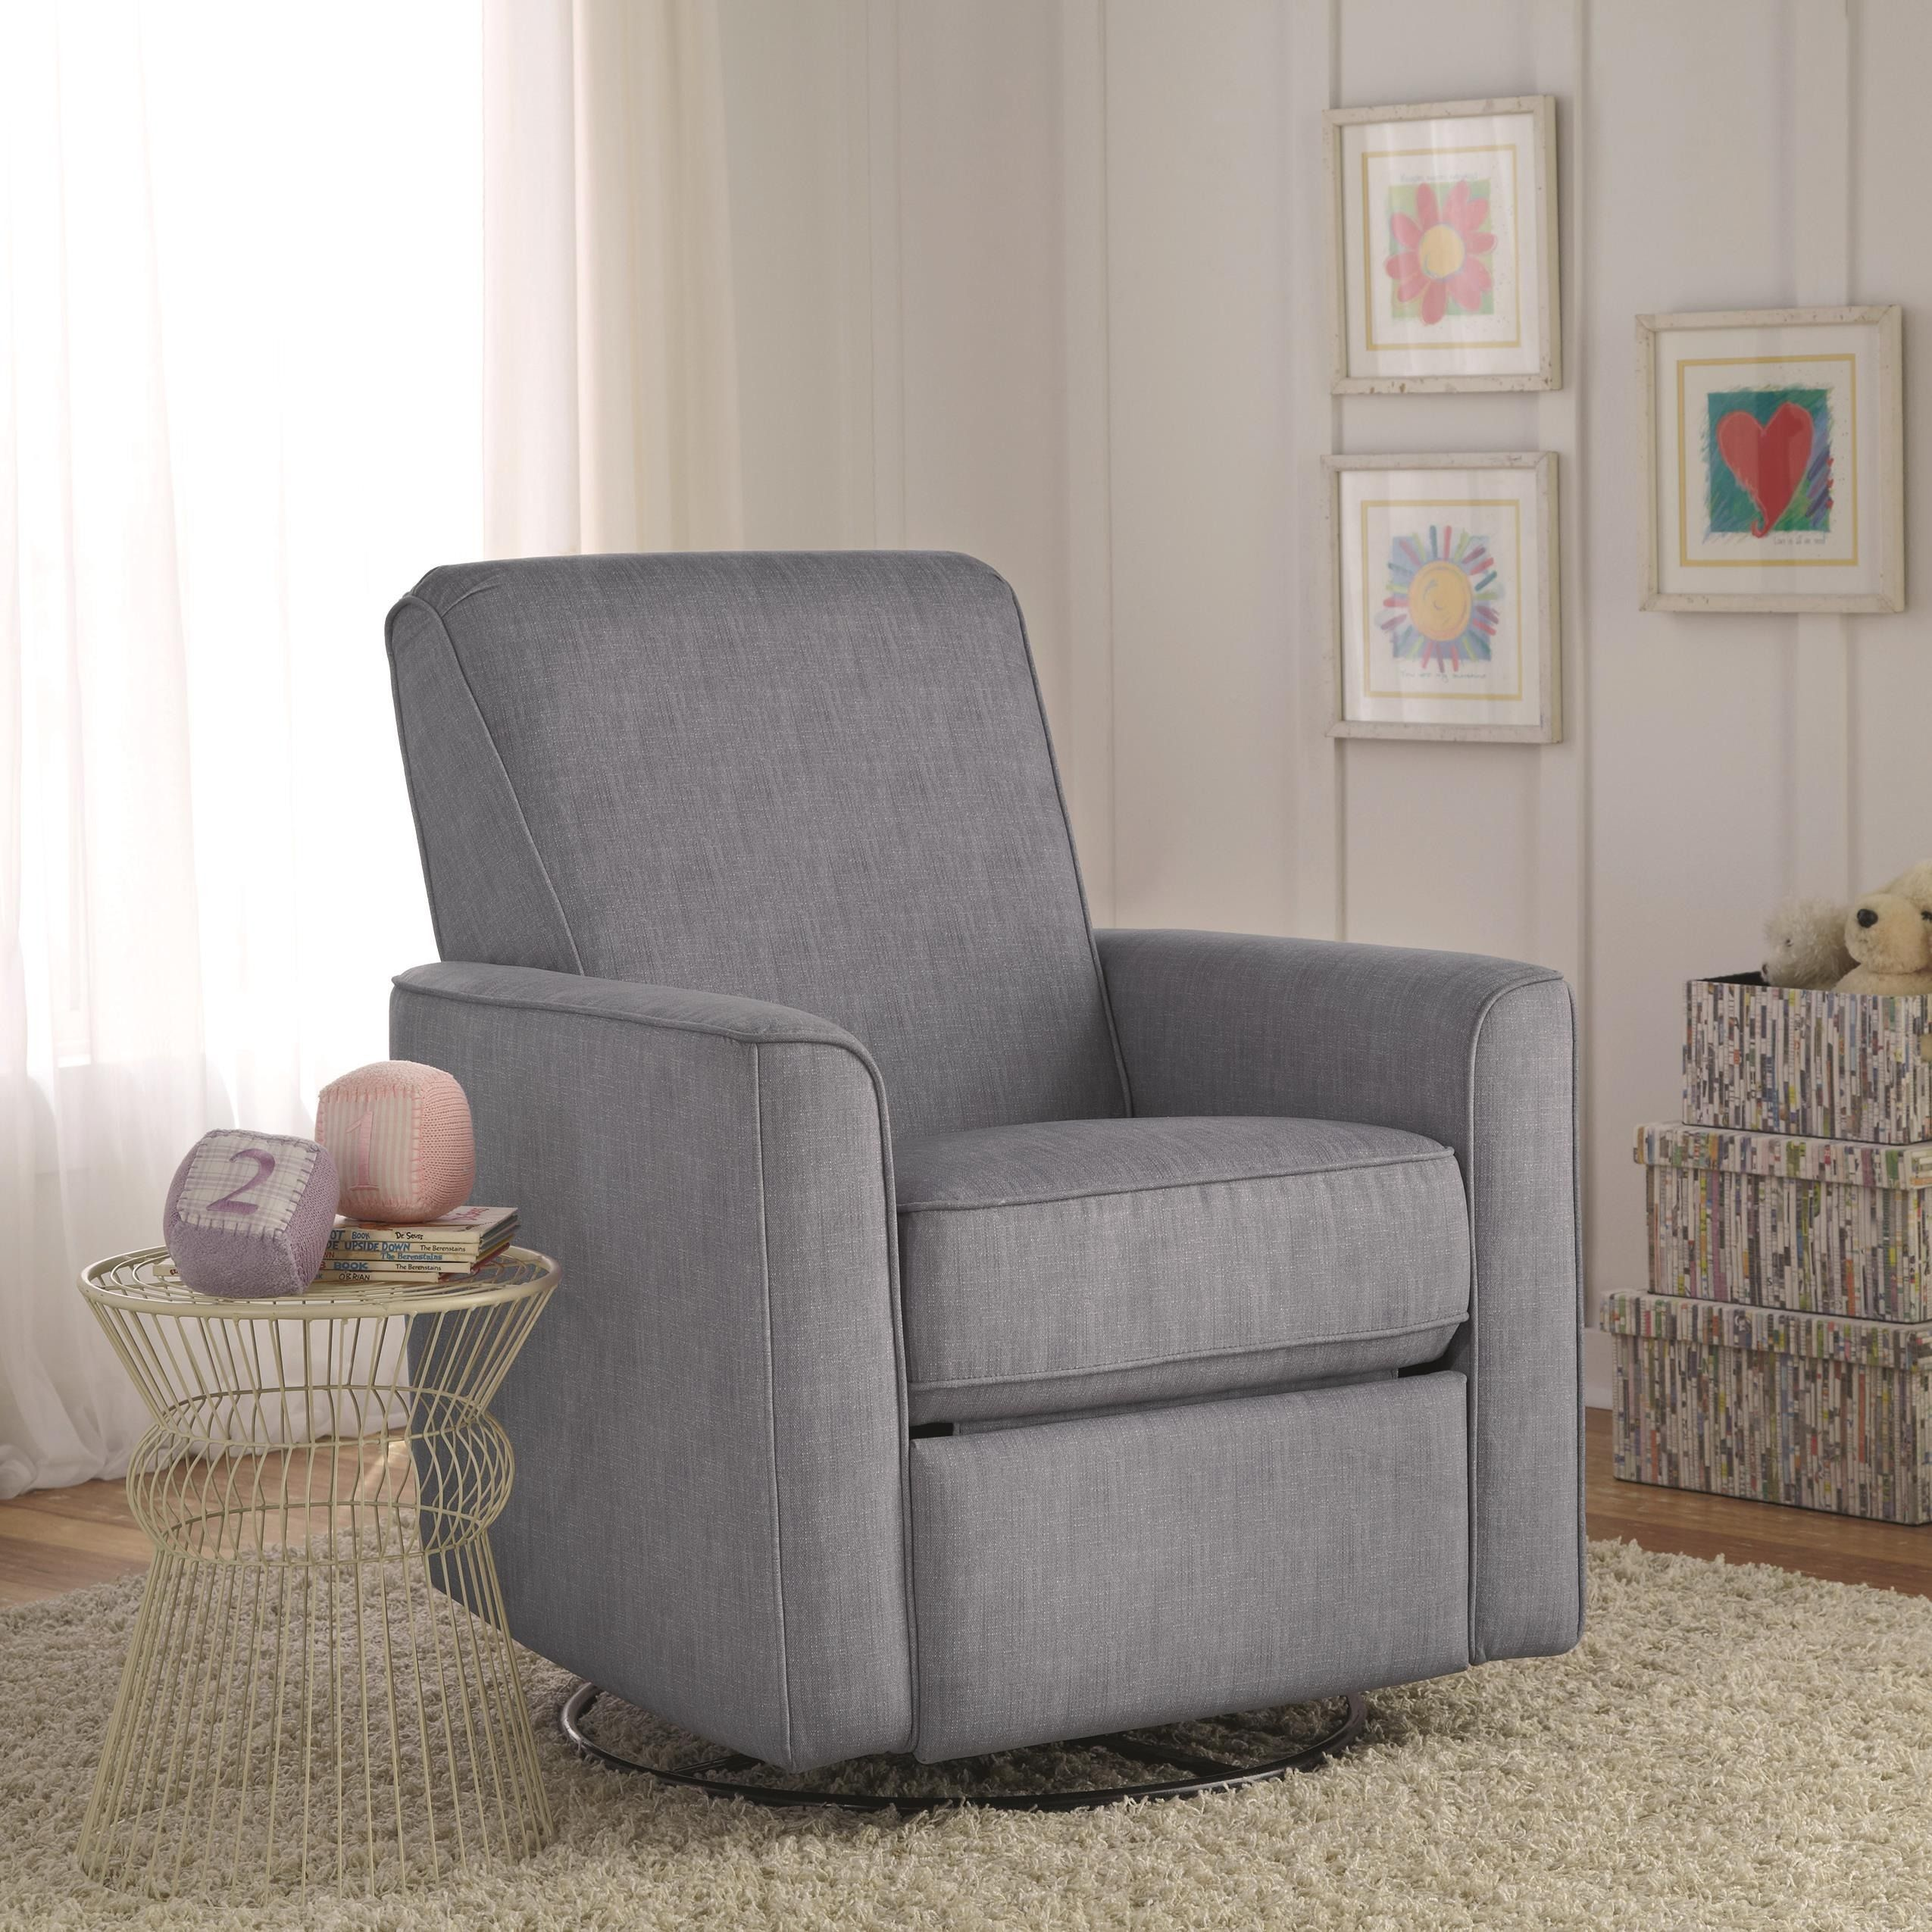 Zoey grey nursery swivel glider recliner chair is handcrafted using time-honored Old World techniques & Zoey grey nursery swivel glider recliner chair is handcrafted ... islam-shia.org